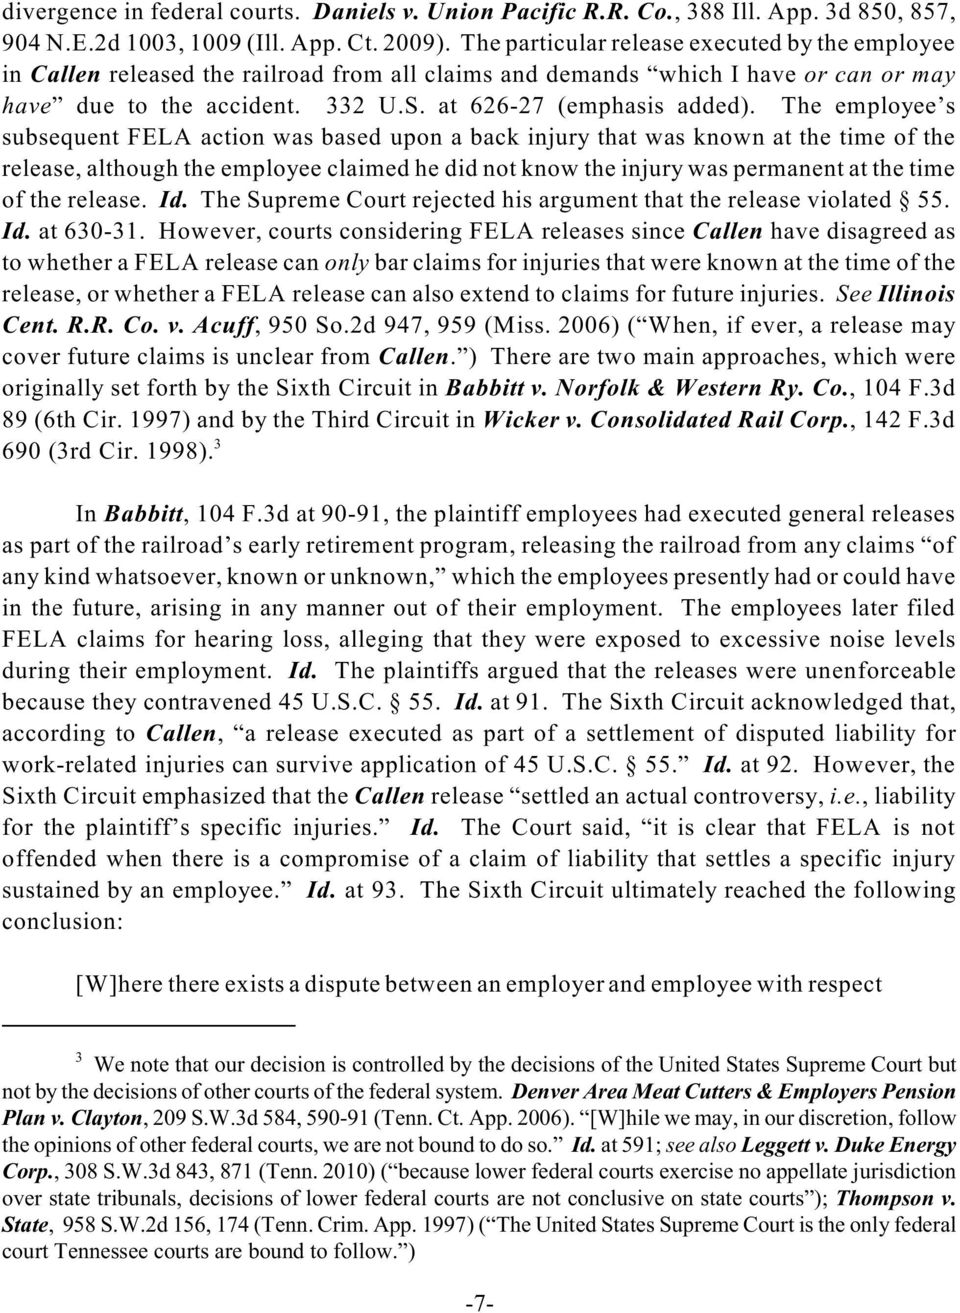 The employee s subsequent FELA action was based upon a back injury that was known at the time of the release, although the employee claimed he did not know the injury was permanent at the time of the